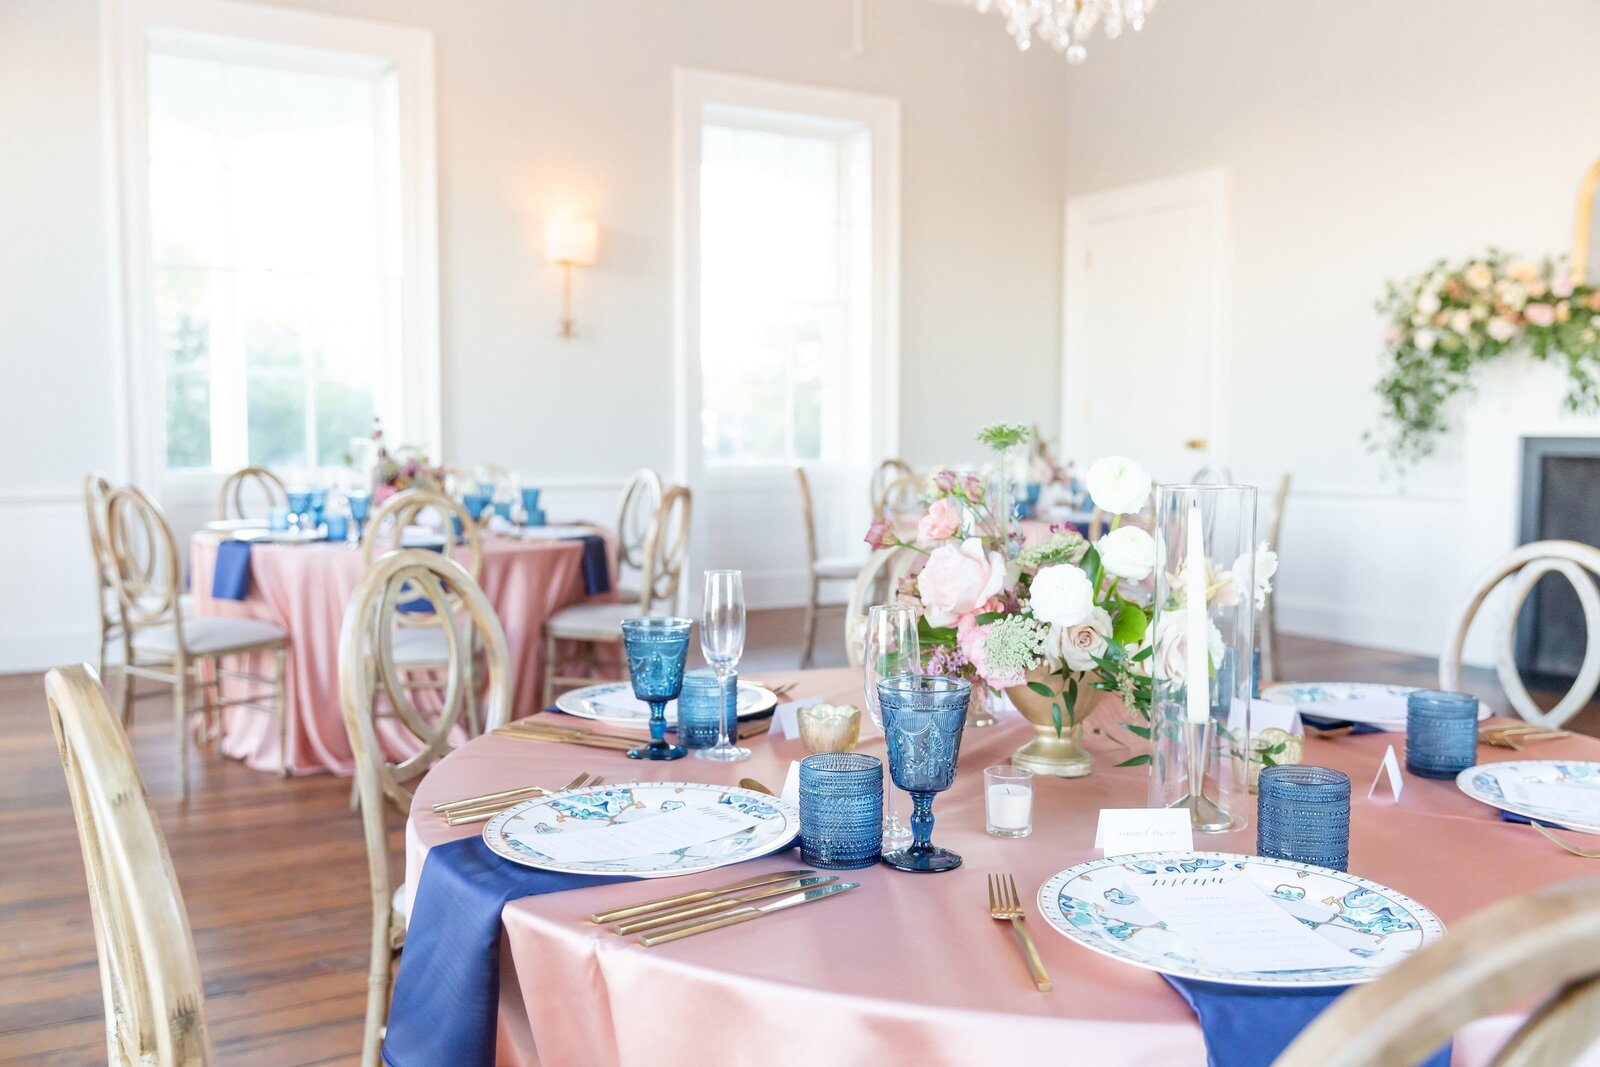 Colorful-spring-gadsden-house-wedding-by-charleston-wedding-photographer-8